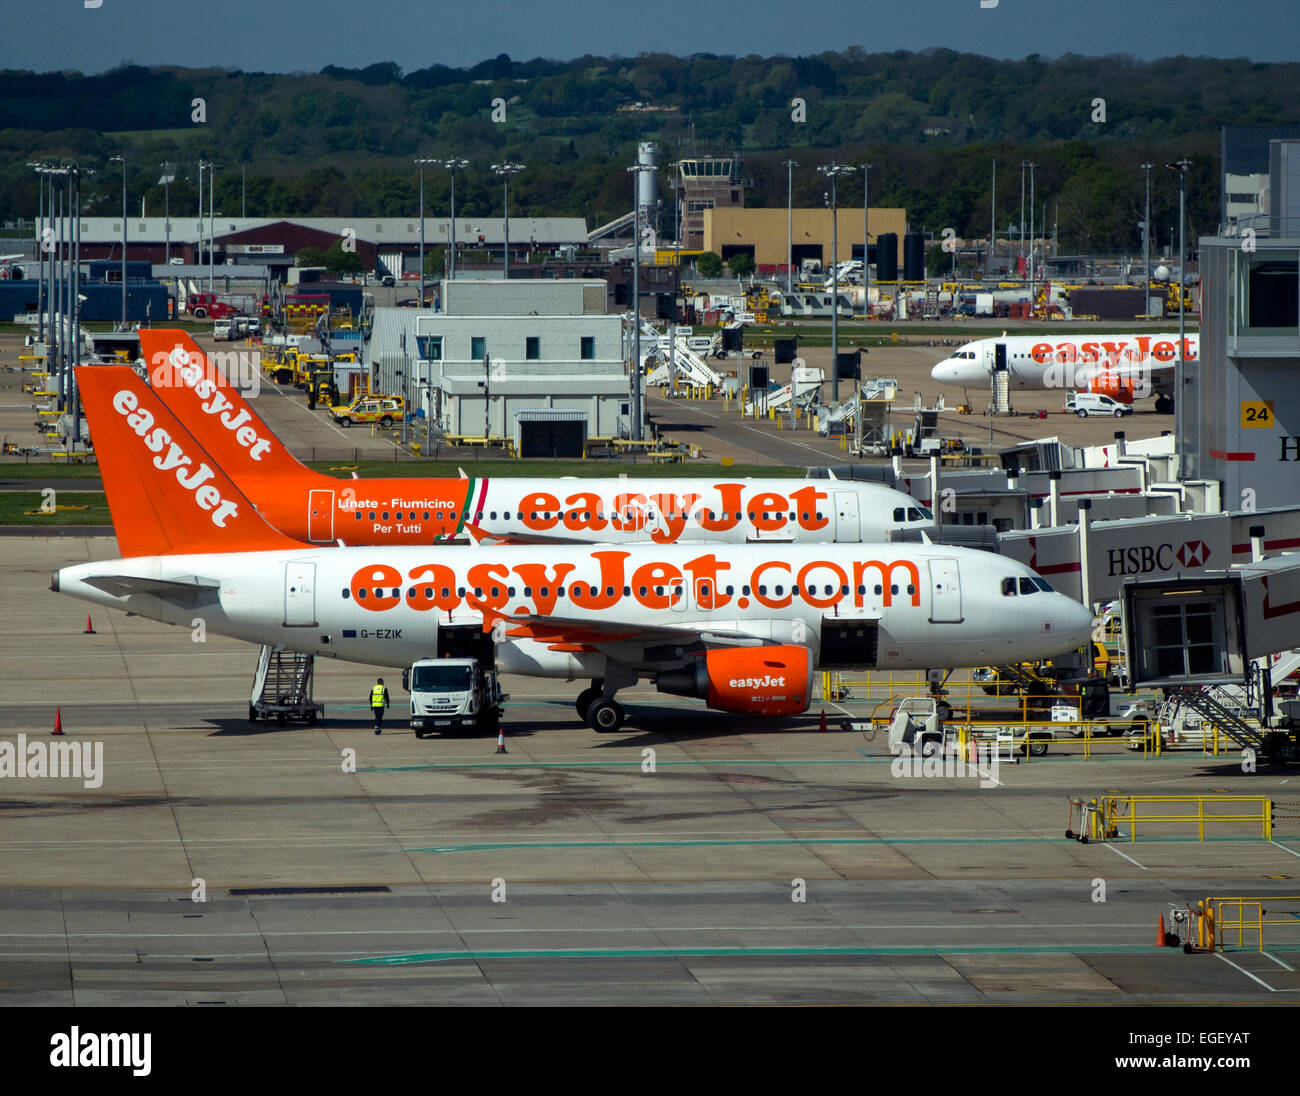 two EasyJet A319 airliners on the runway at Gatwick - Stock Image